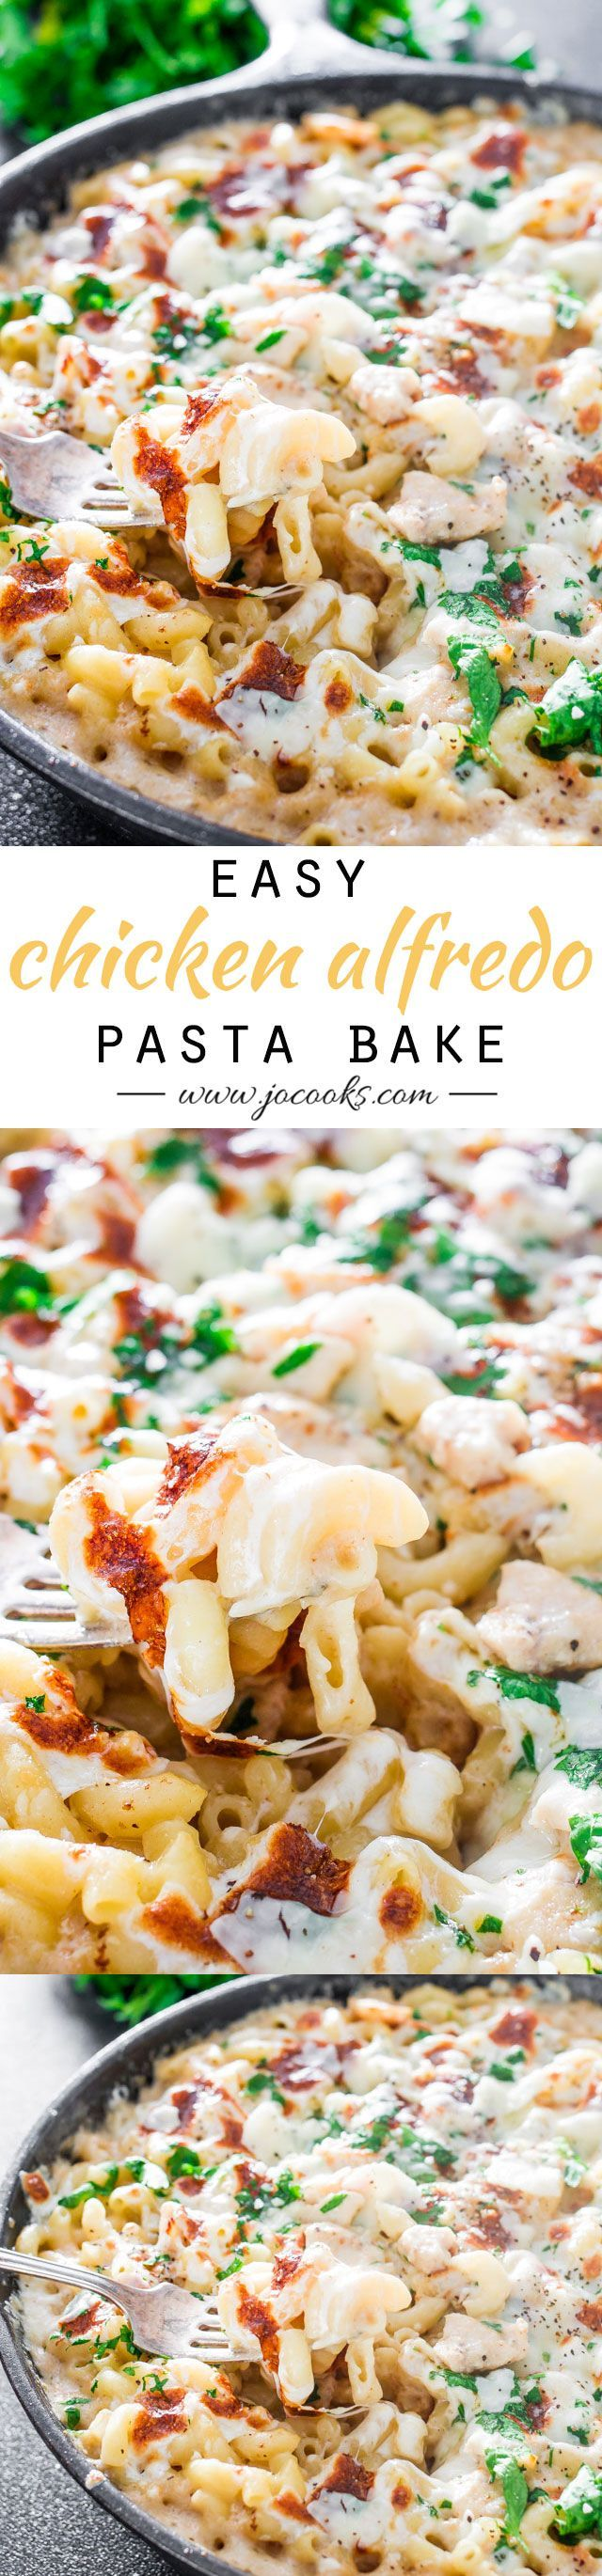 Easy Chicken Alfredo Pasta Bake - A delicious, no-fuss dinner that you can easily make at home with very few ingredients!